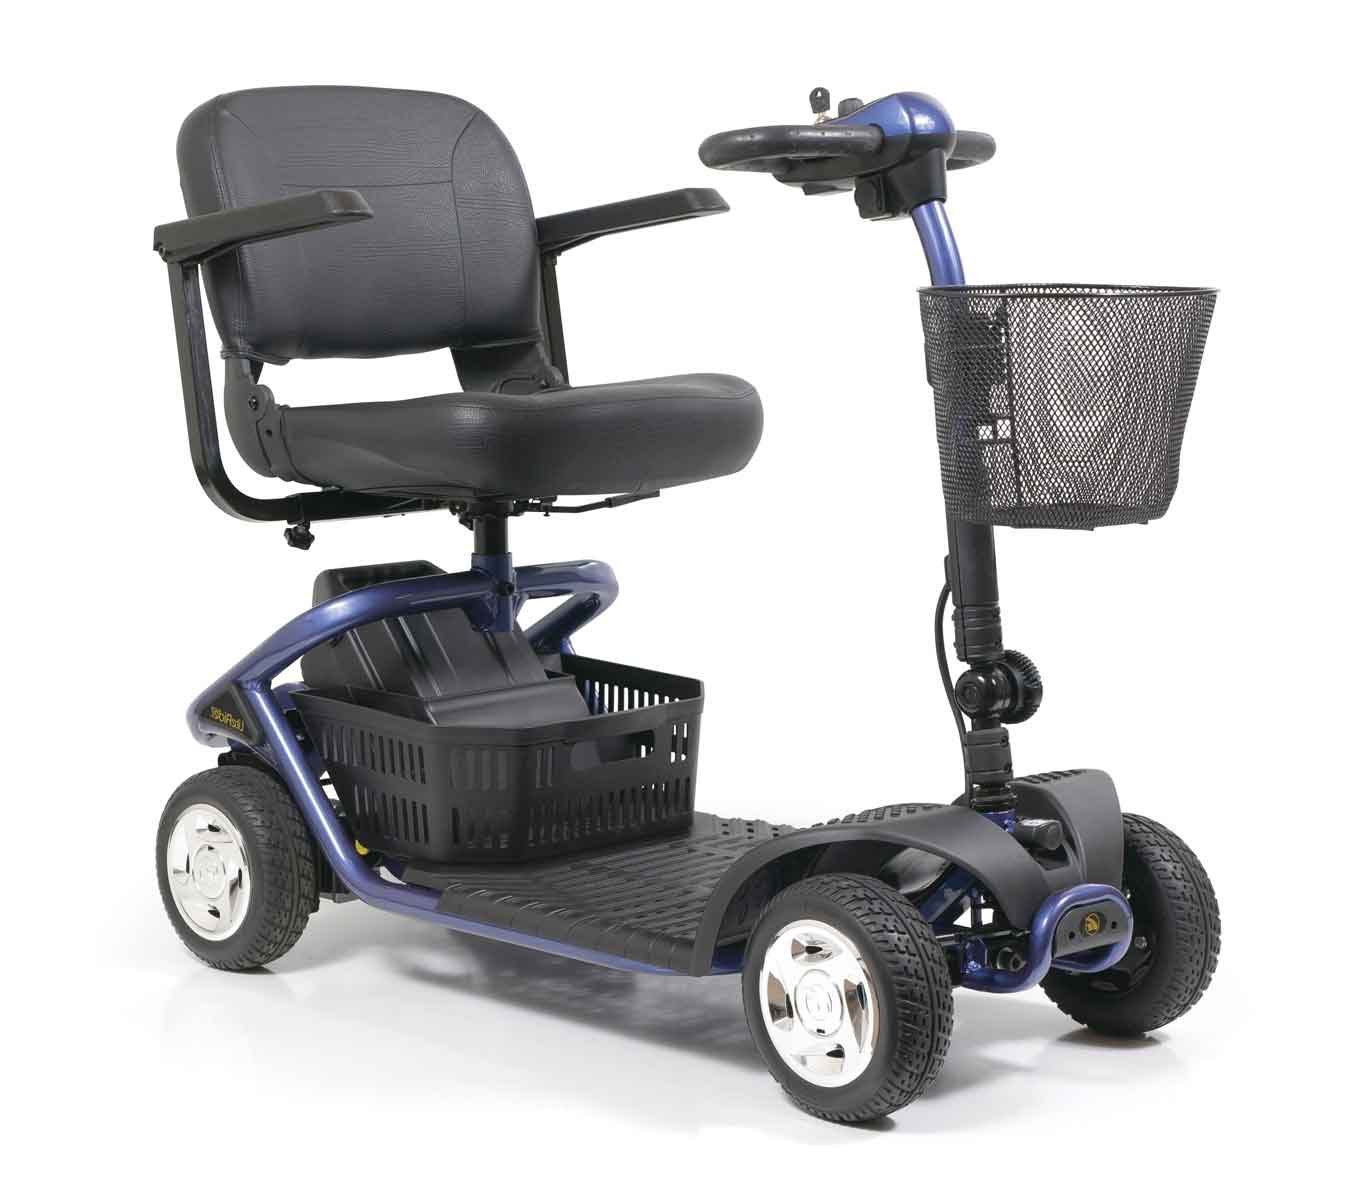 Buy or Rent Durable Medical Equipment At Mobility Plus